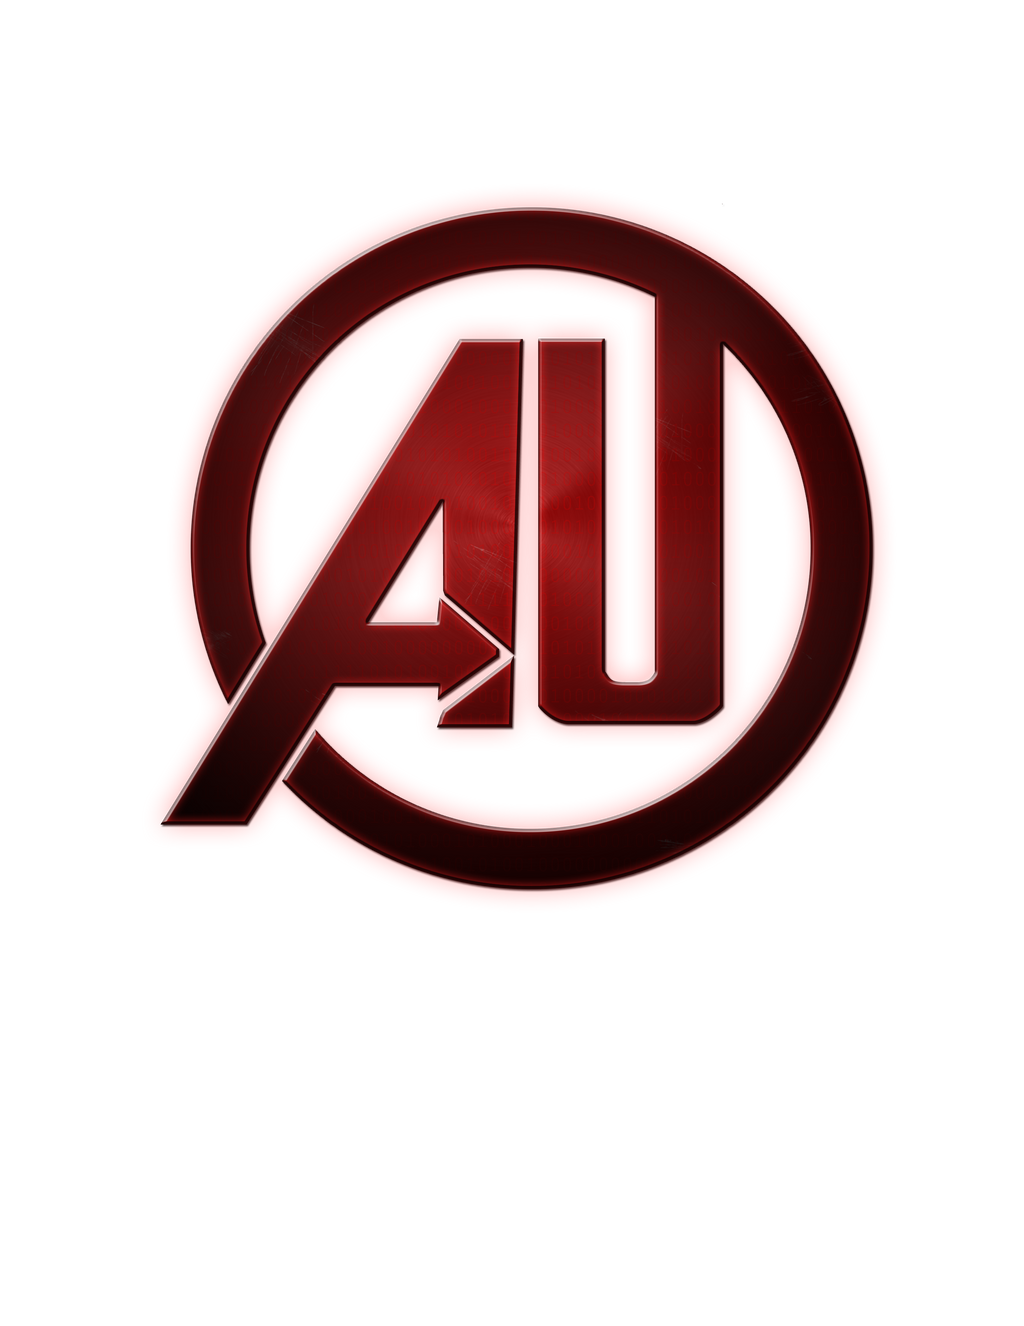 THE AVENGERS: AGE OF ULTRON - LOGO PNG by MrSteiners on ...